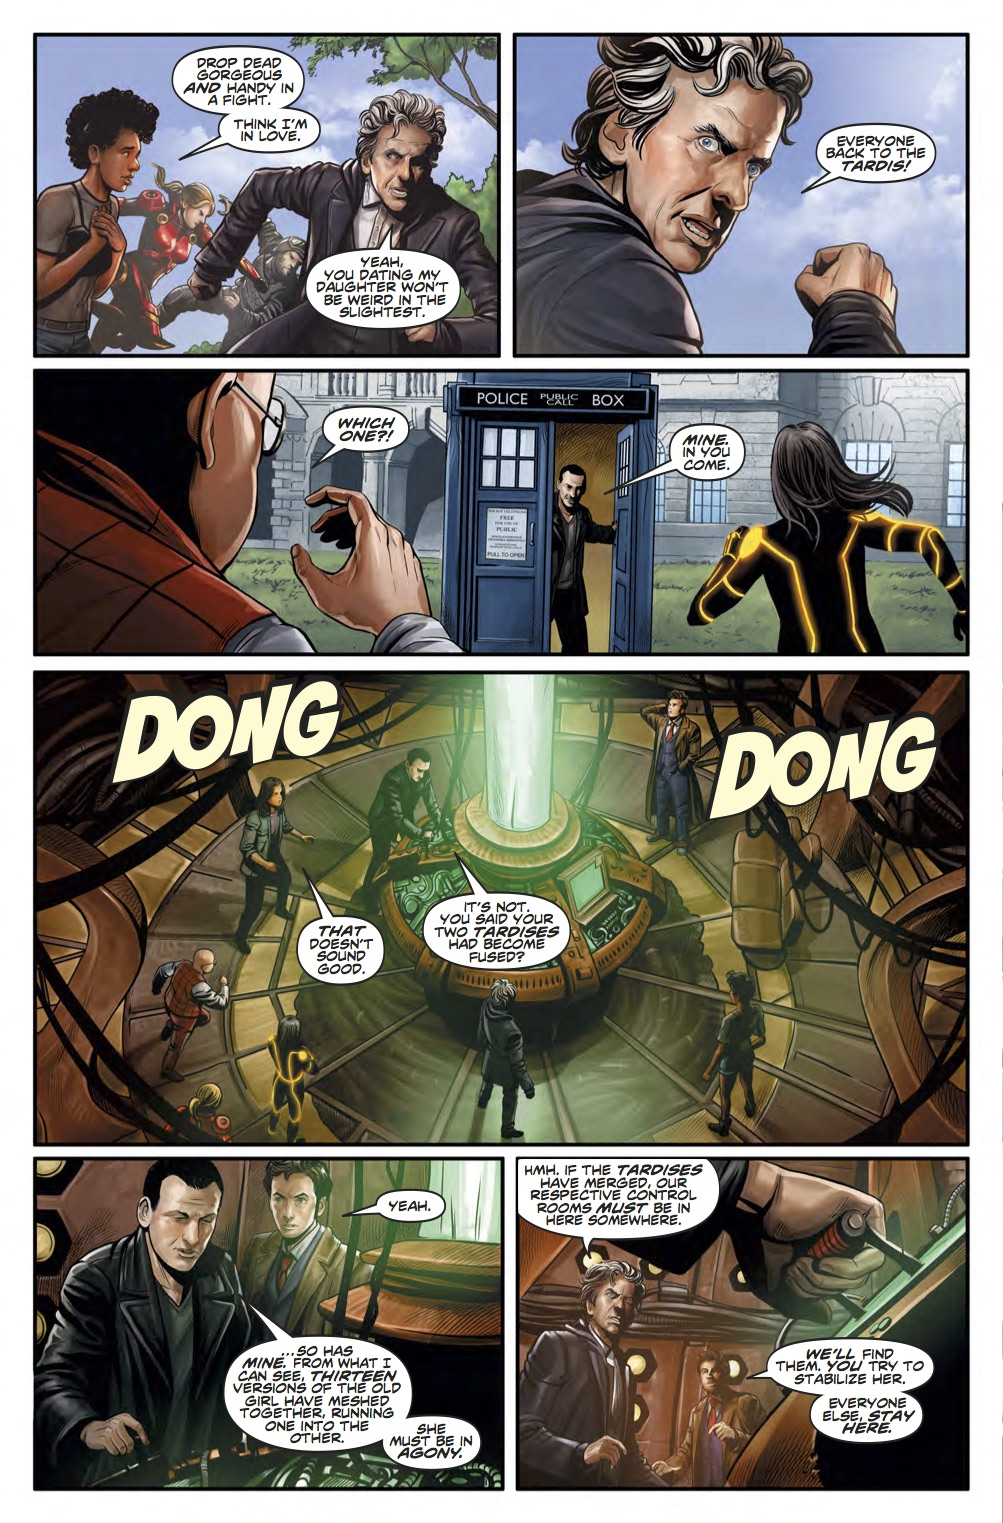 Doctor Who News - Page 4 (Credit: Titan )